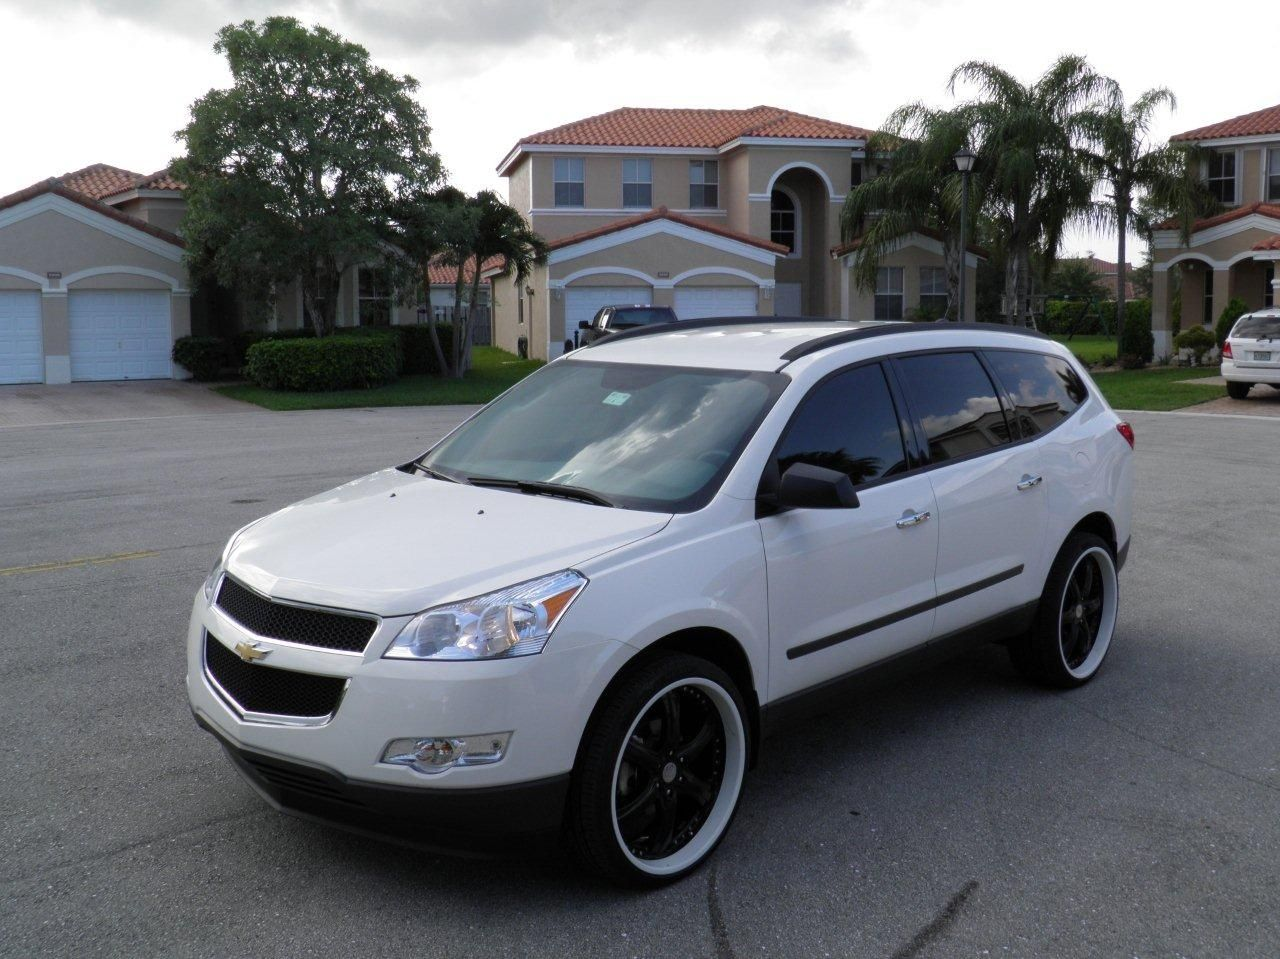 2014 chevy traverse white black rims Google Search